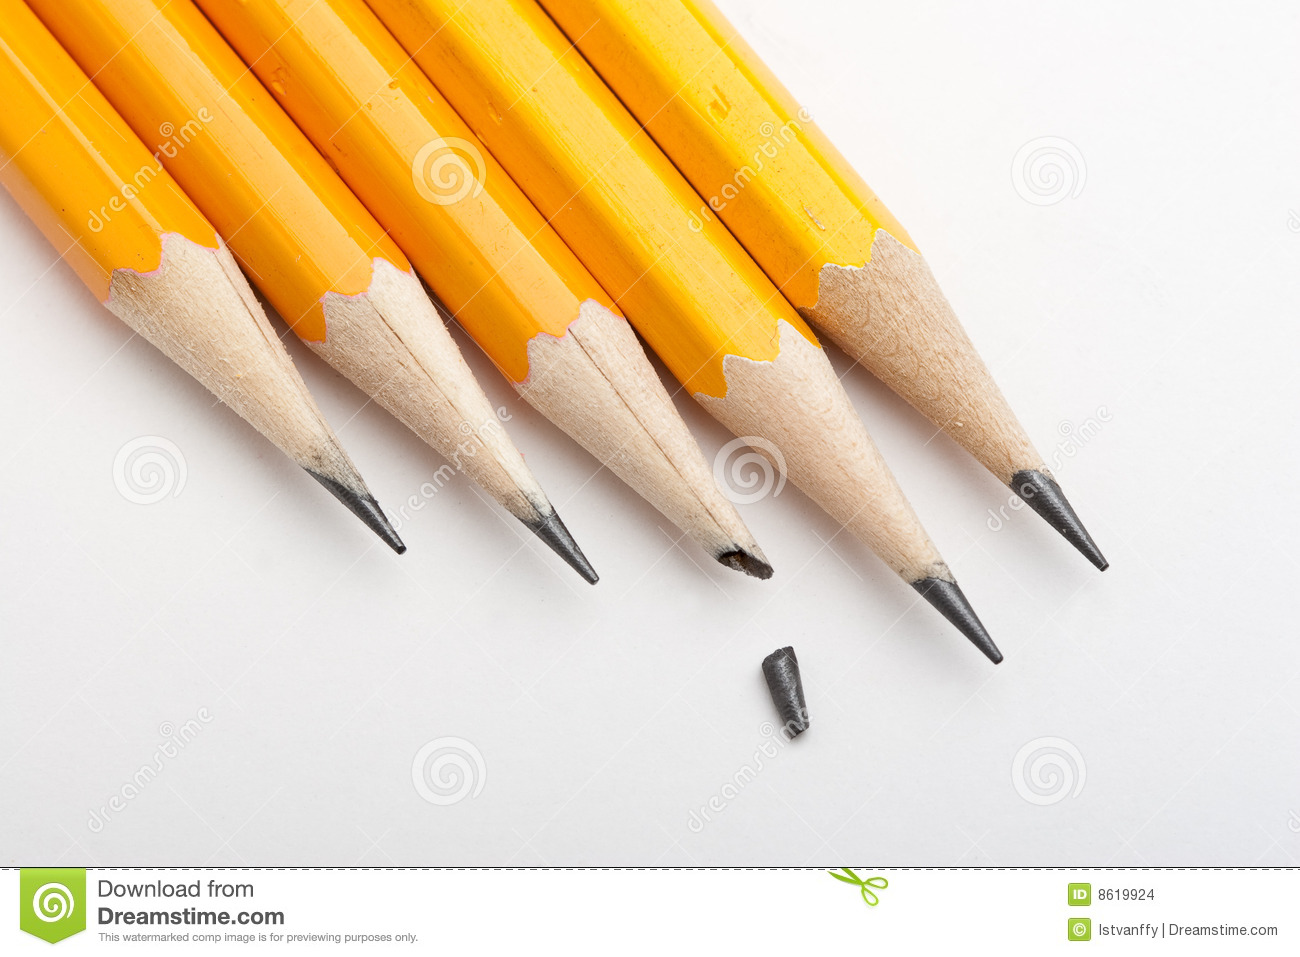 Line Of Sharpened Black Pencils With One Pencil With A Broken Point